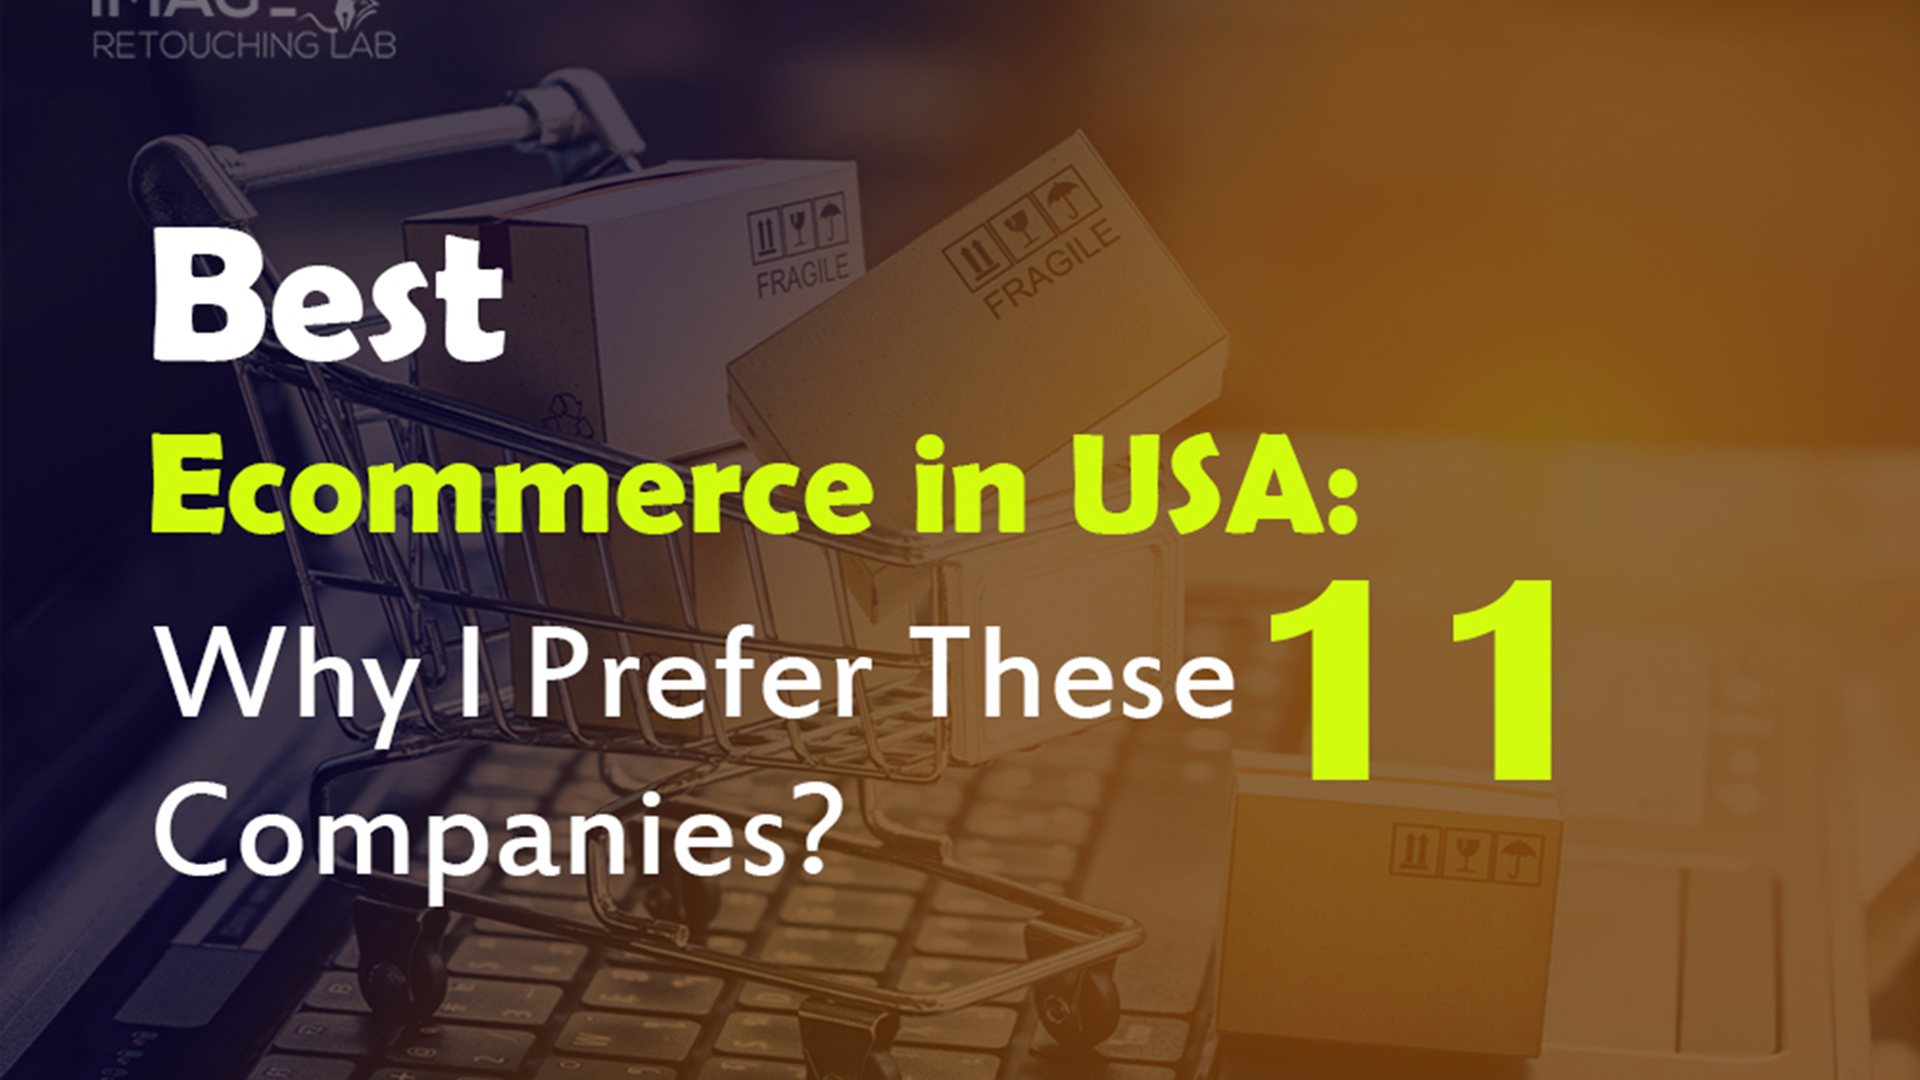 Best Ecommerce in USA Why I Prefer These 11 Companies?